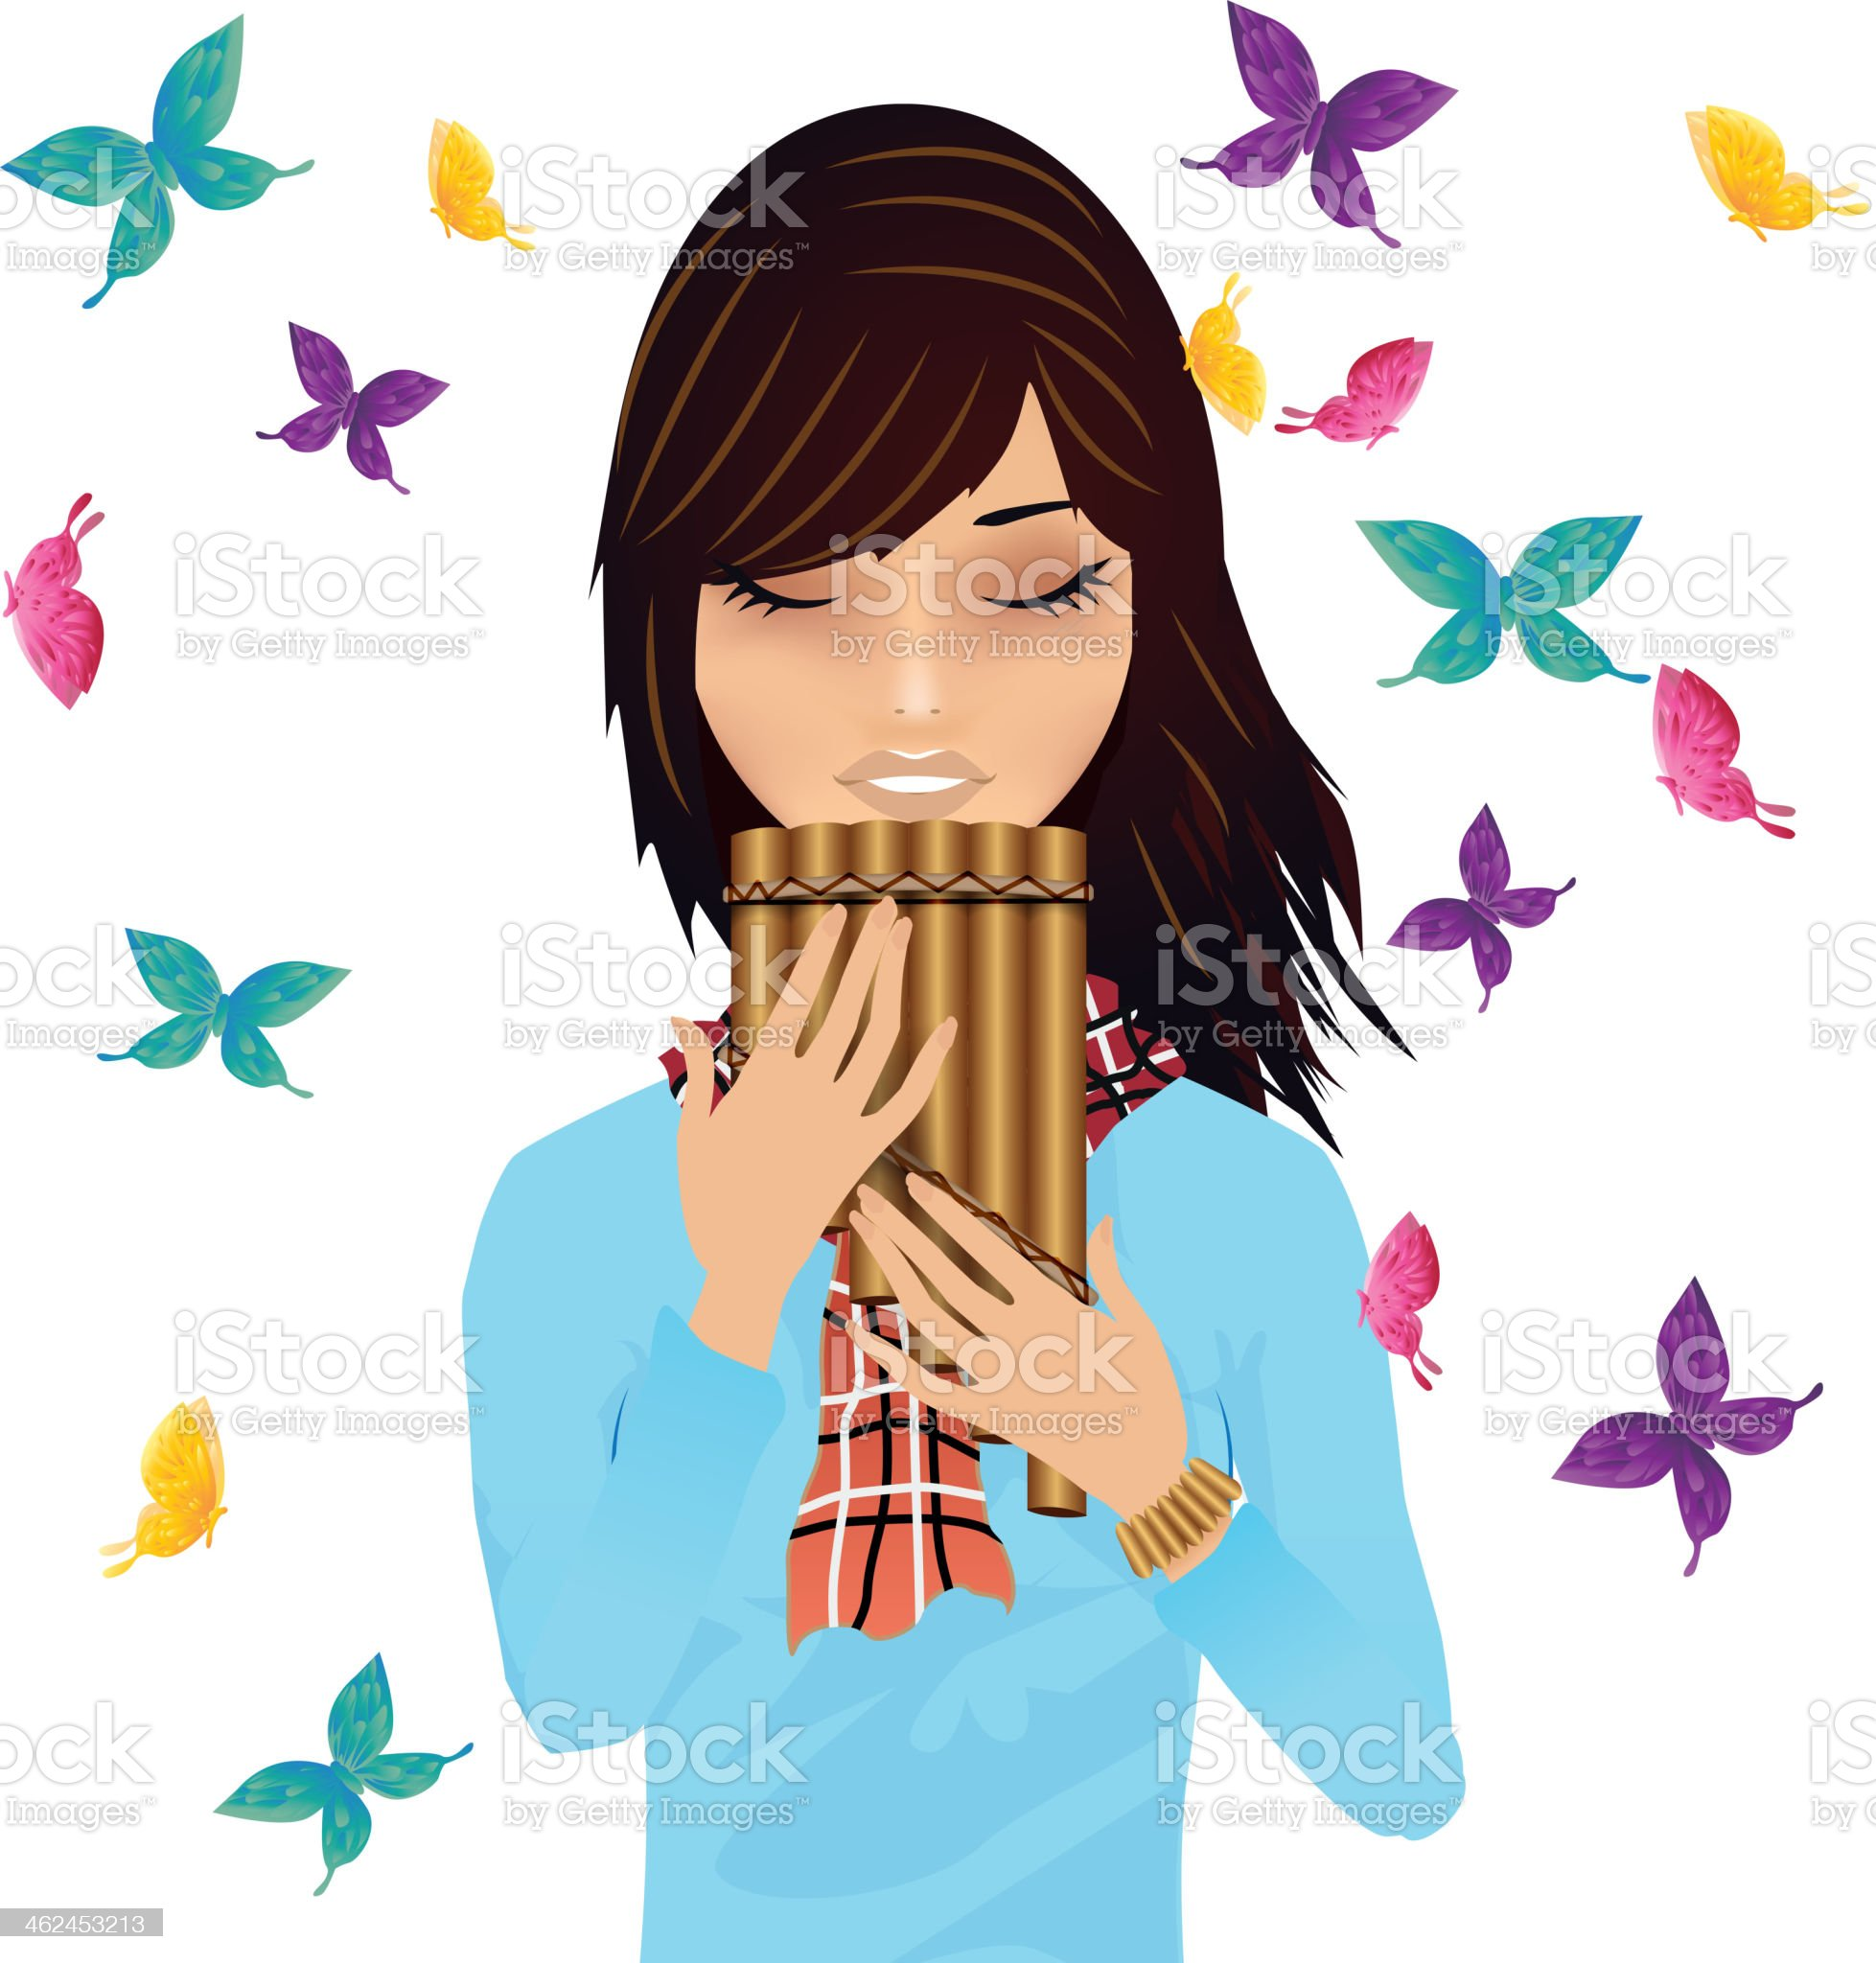 Girl with a pan's flute surrounded by butterflies vector royalty-free stock vector art